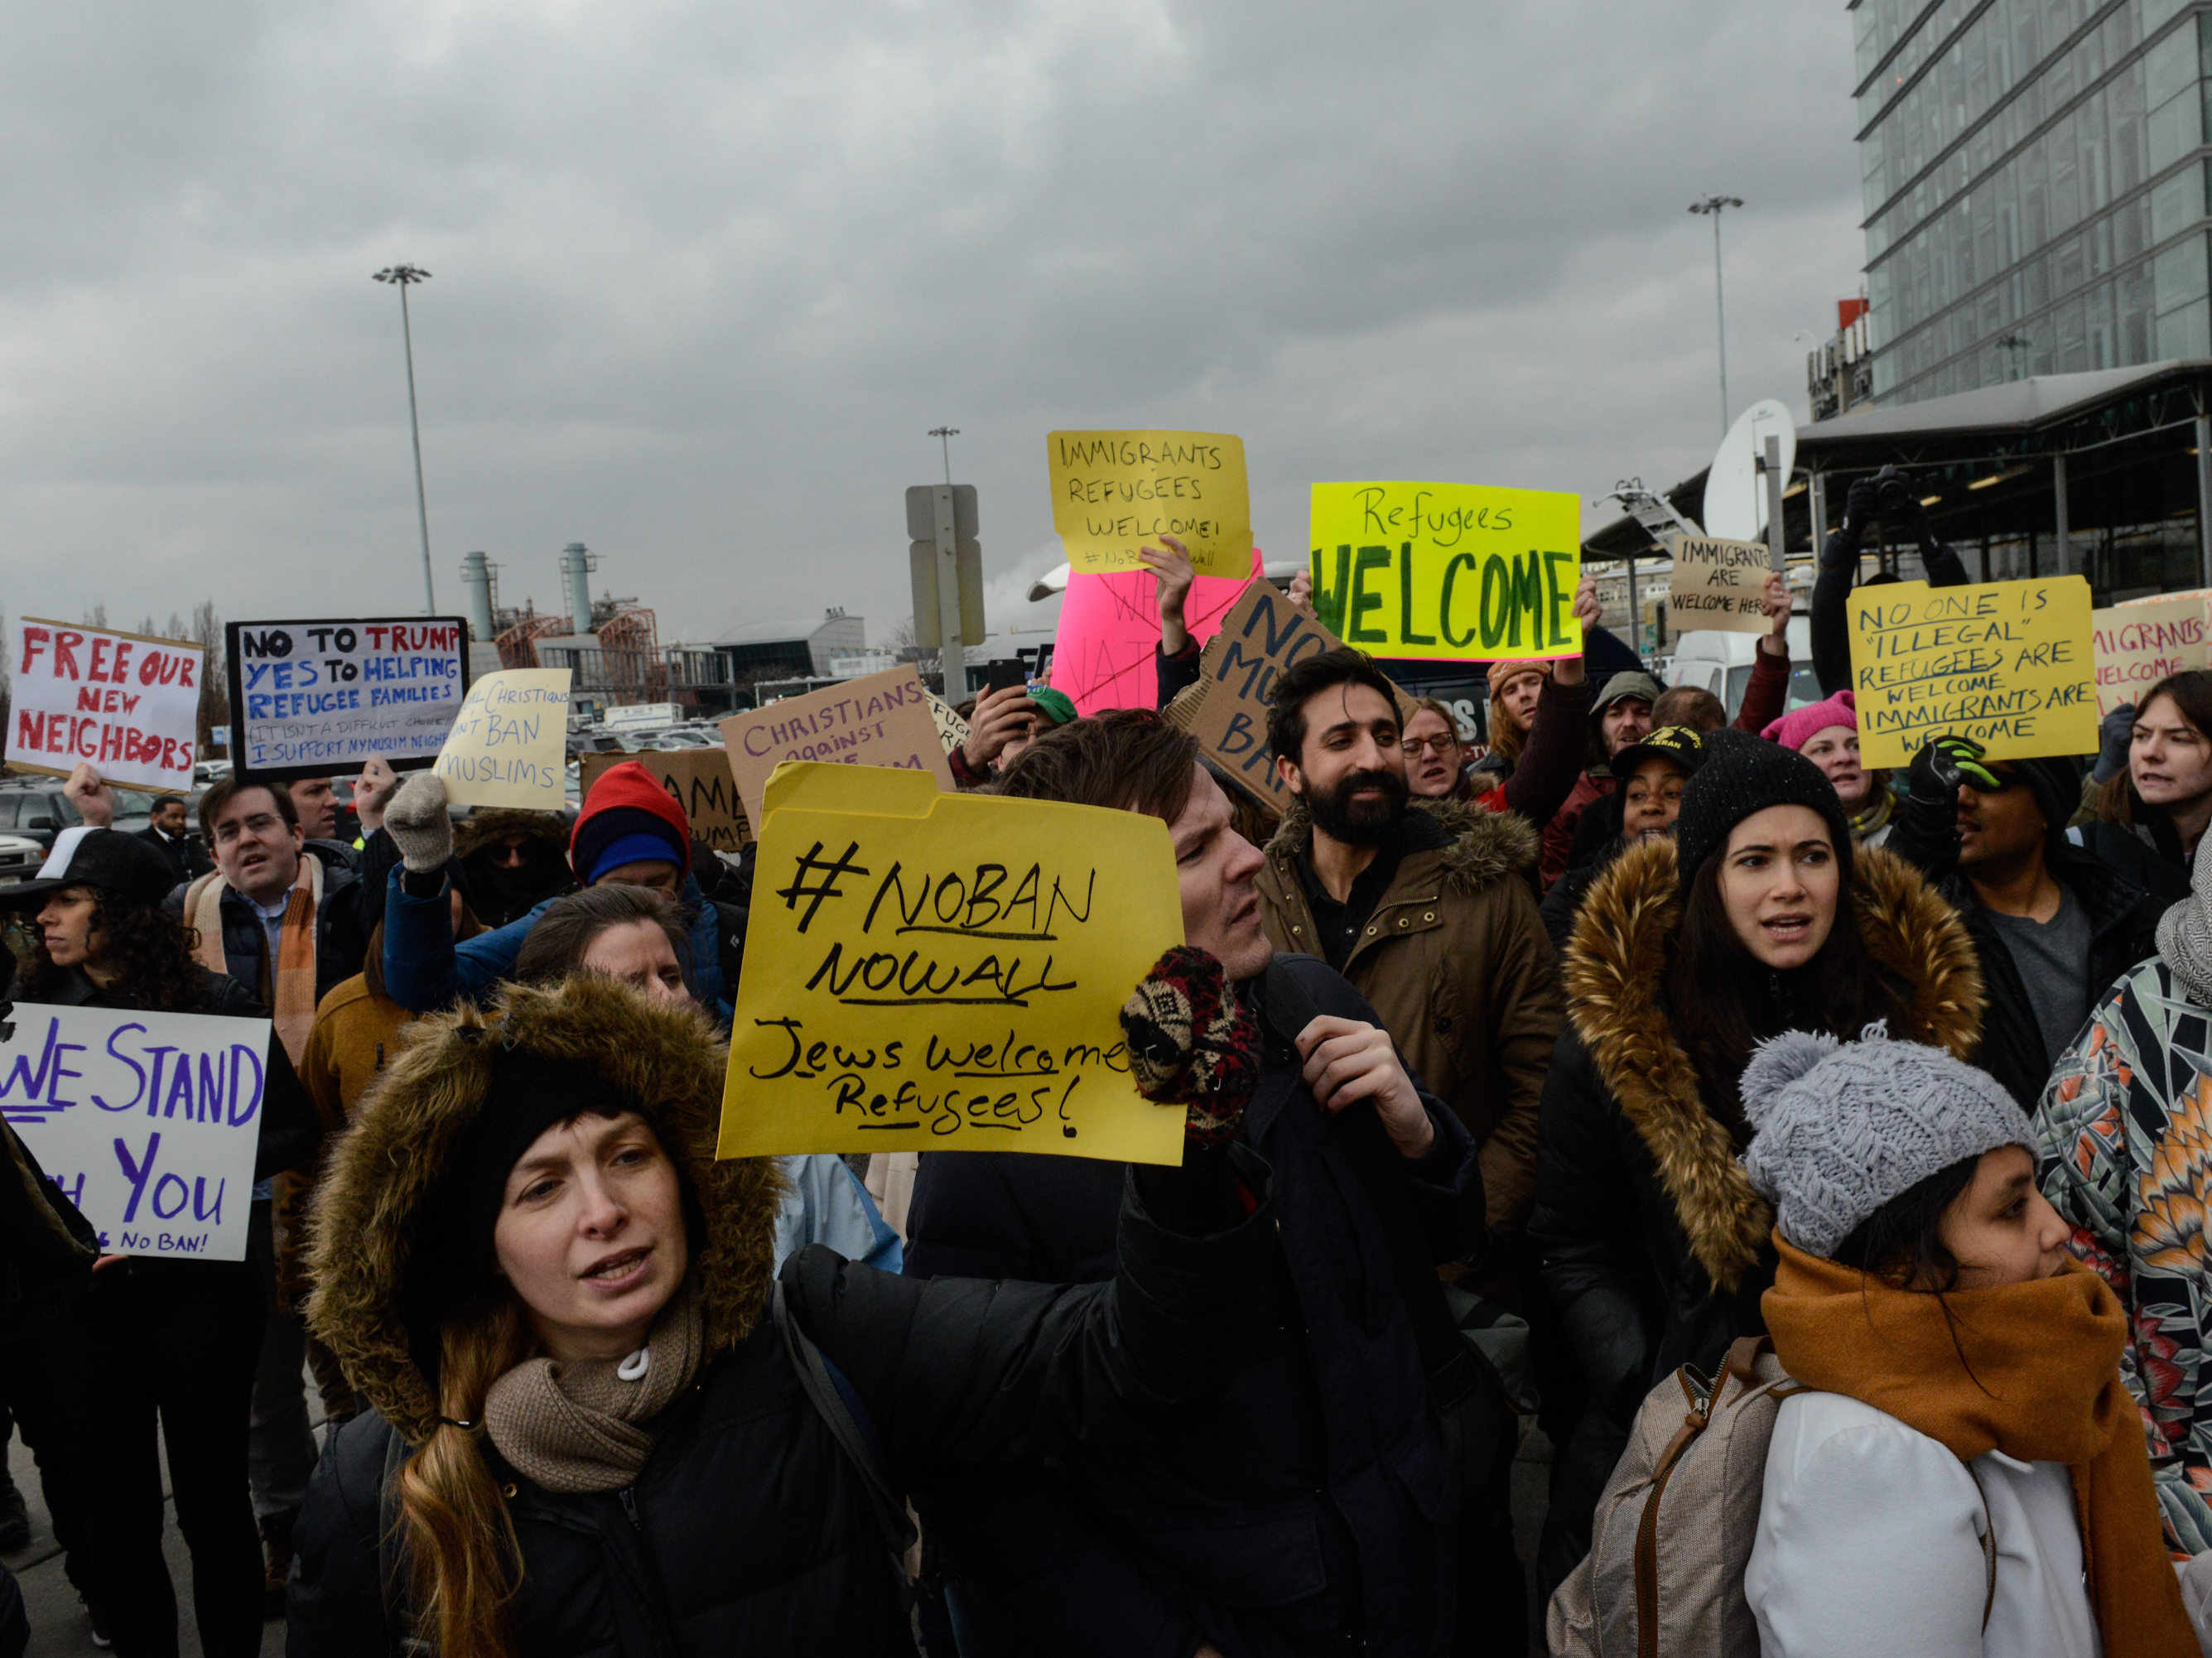 Protesters rally outside Kennedy International Airport to protest Trump's executive order on Saturday. New York City officials and immigrant advocates are holding are also holding a vigil at the airport Saturday evening. (Stephanie Keith/Getty Images)